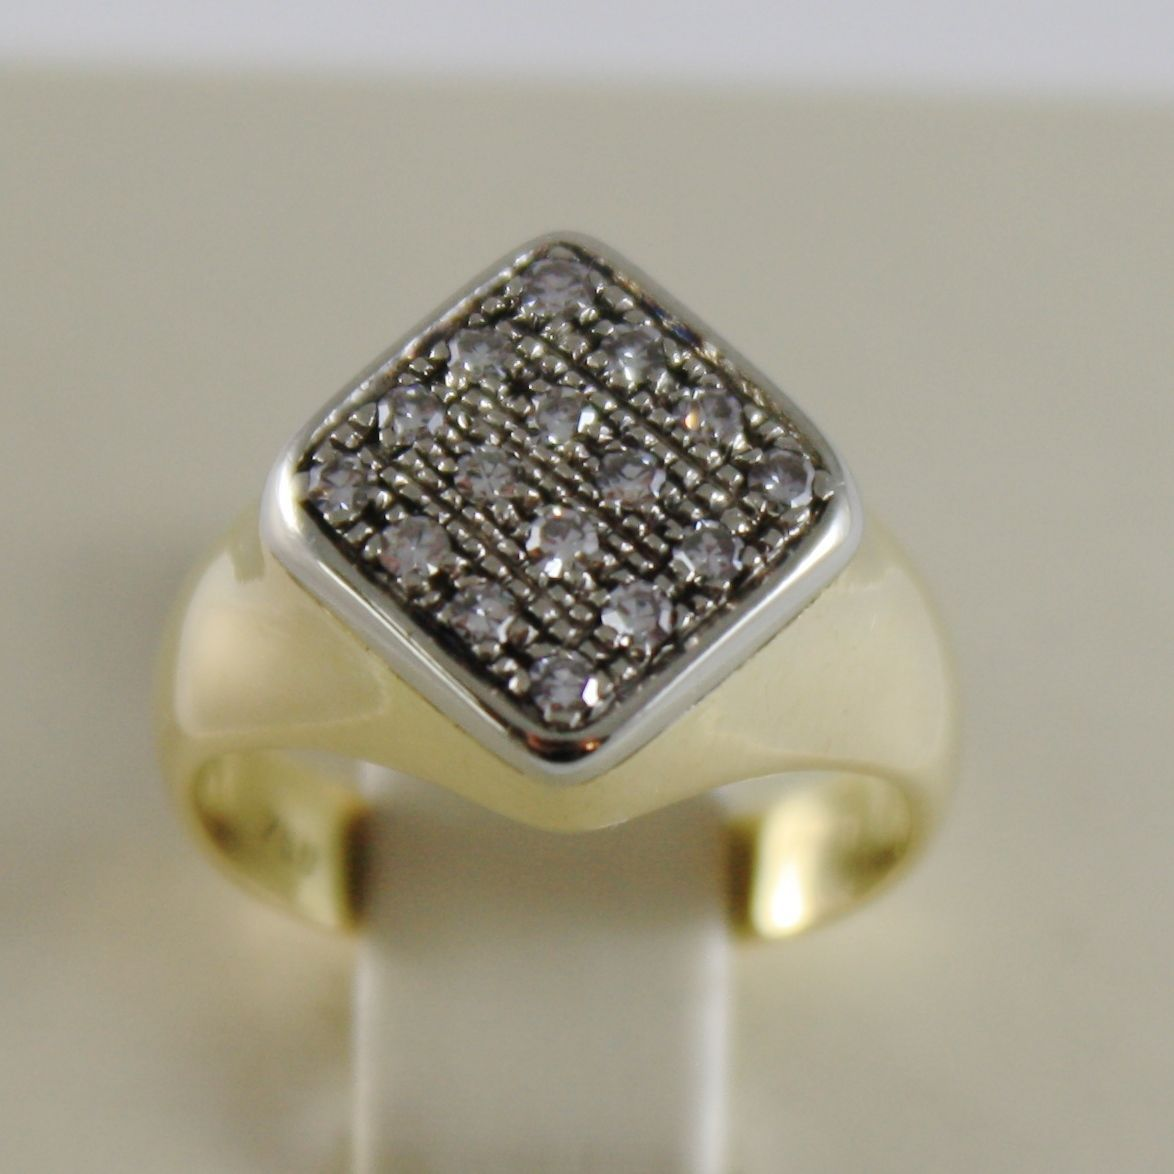 SOLID 18K YELLOW GOLD LITTLE FINGER RHOMBUS BAND RING WITH DIAMOND MADE IN ITALY